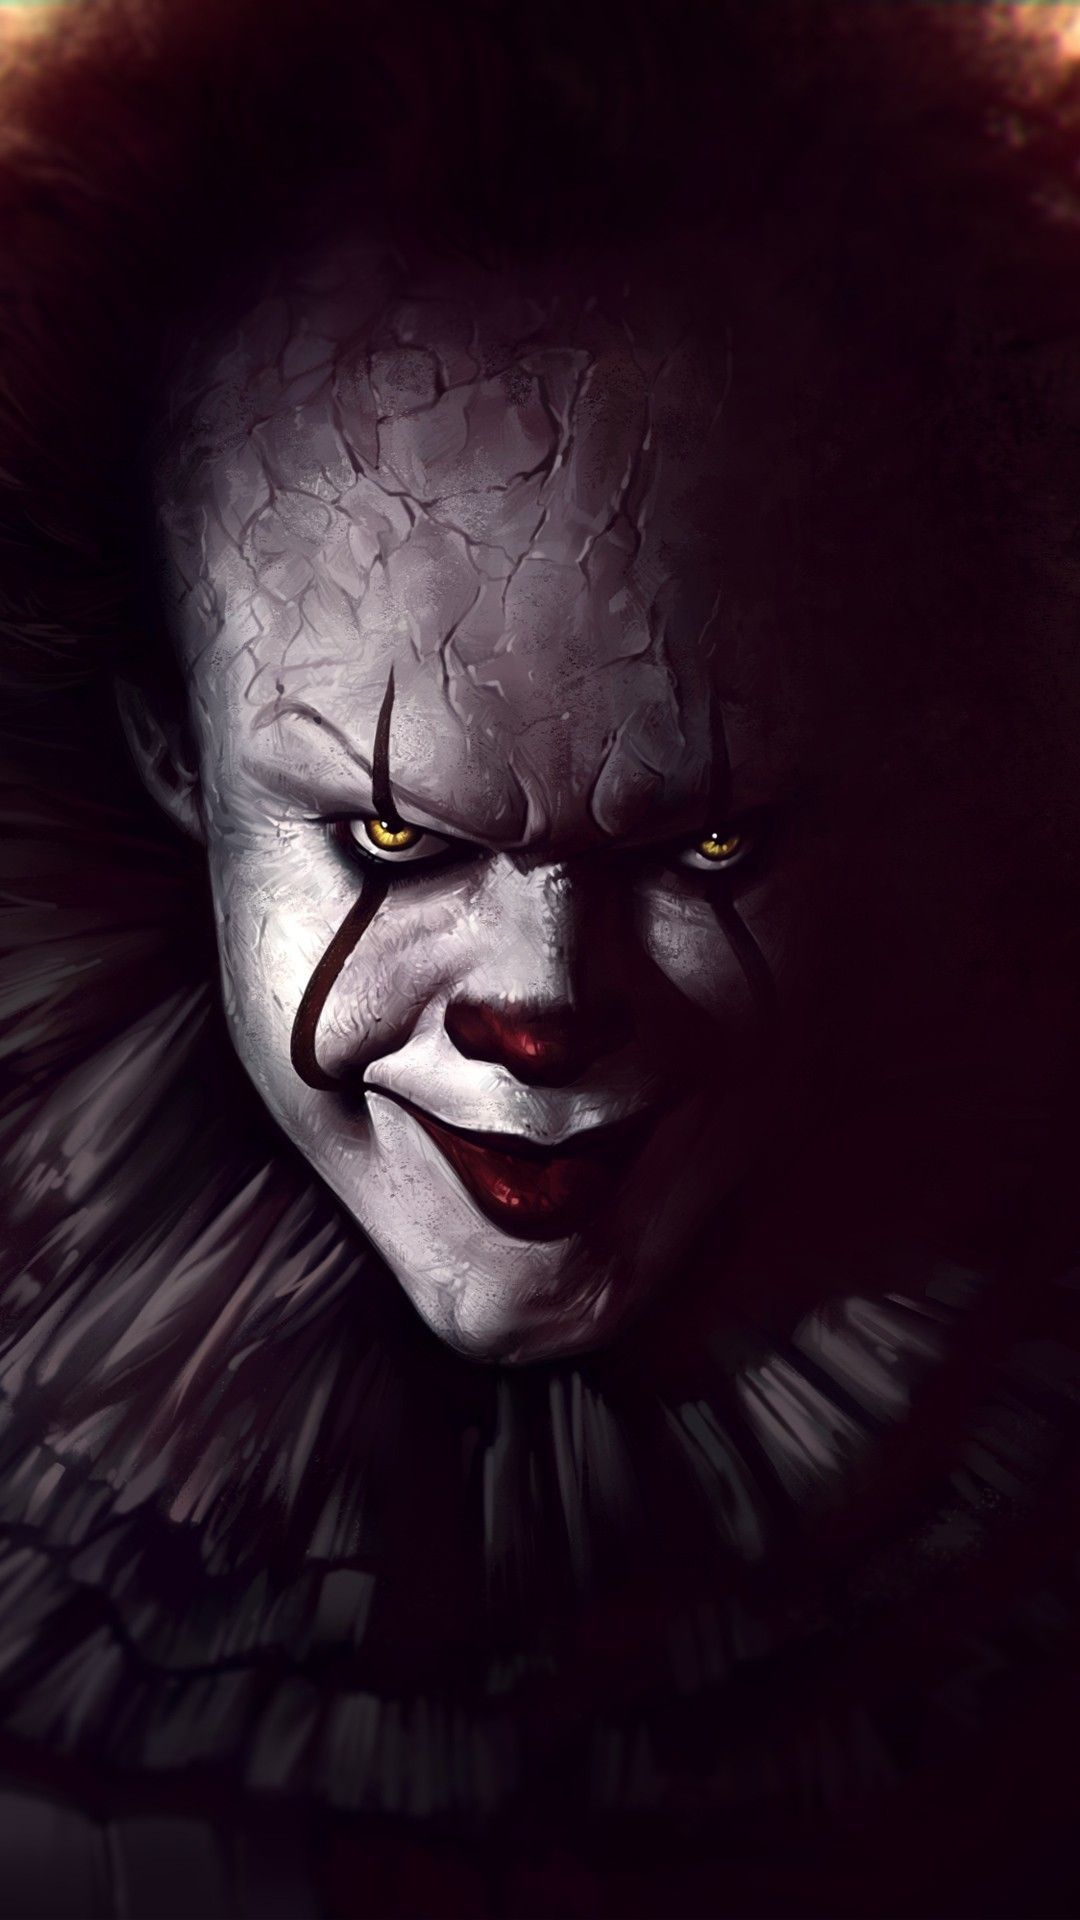 Horror Scary Wallpaper Android Download Scary wallpaper